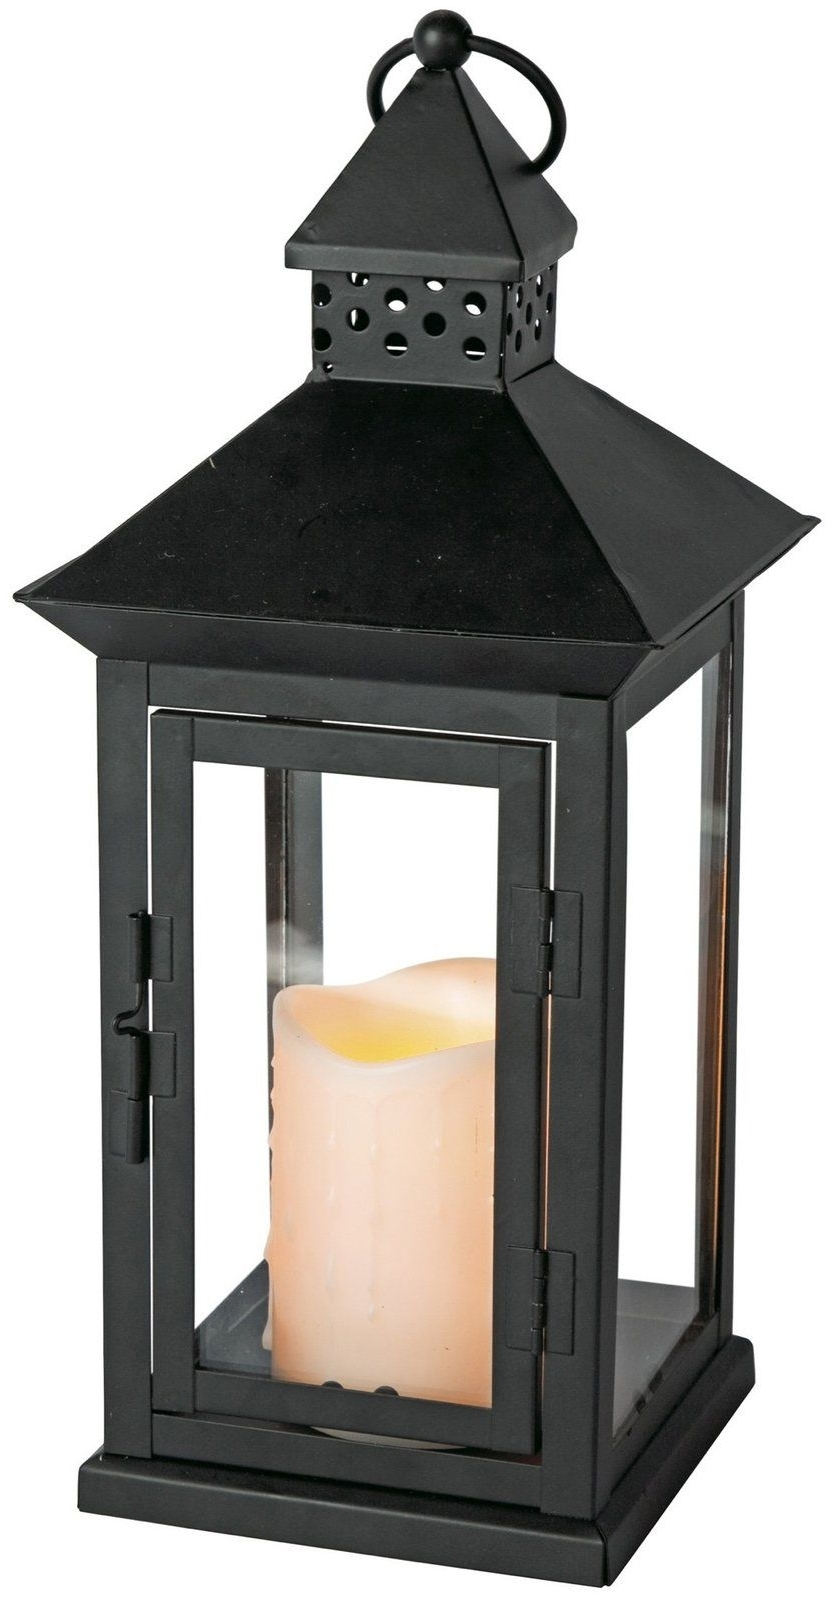 Preferred Indoor Outdoor Flameless Candle Lantern W/ Timer, 8.5 X (View 8 of 20)